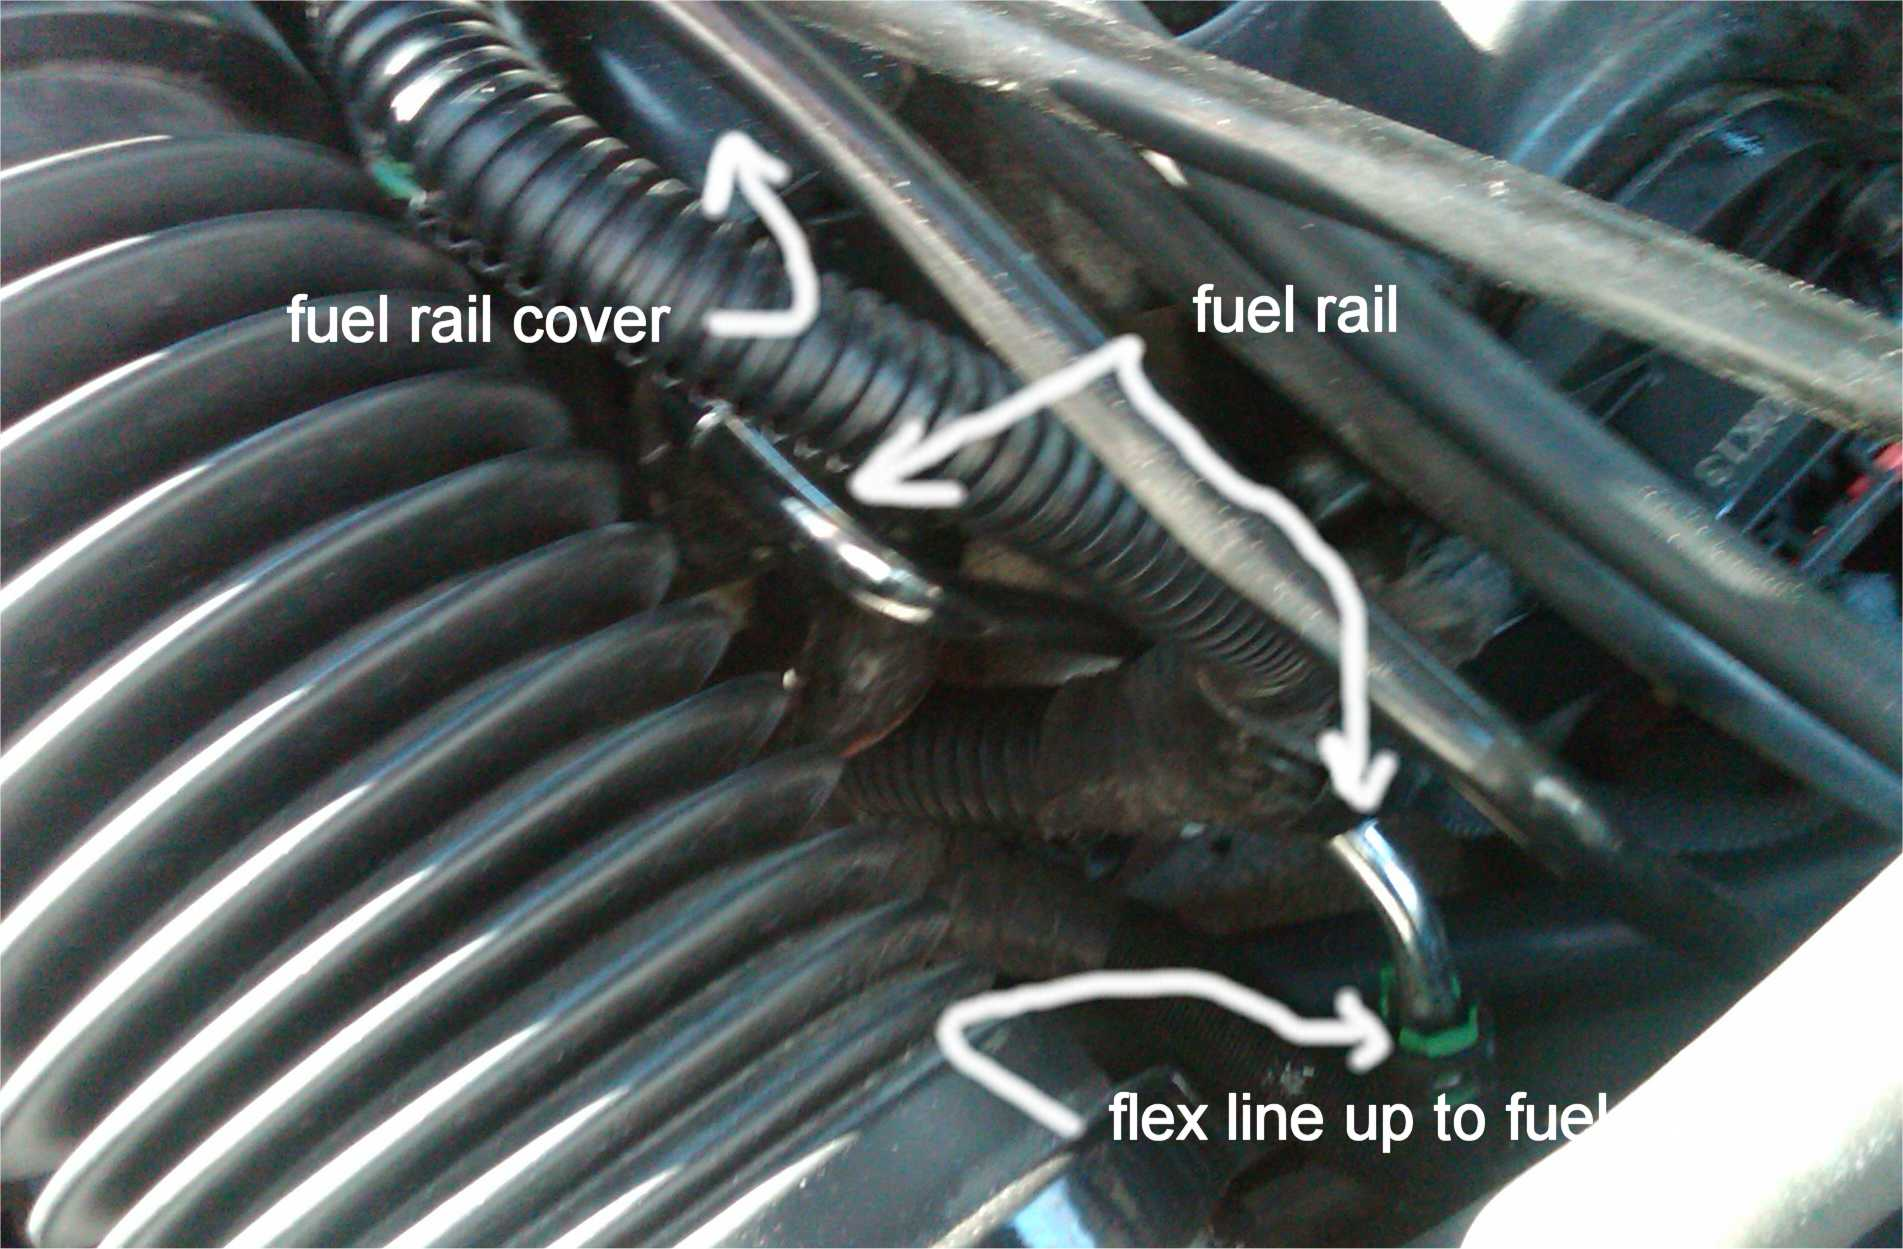 Dodge Stratus Fuel Rail Filter Wire Diagrams 2005 Grand Caravan Wires 2 4l Sxt Wont Start Replaced Plugs